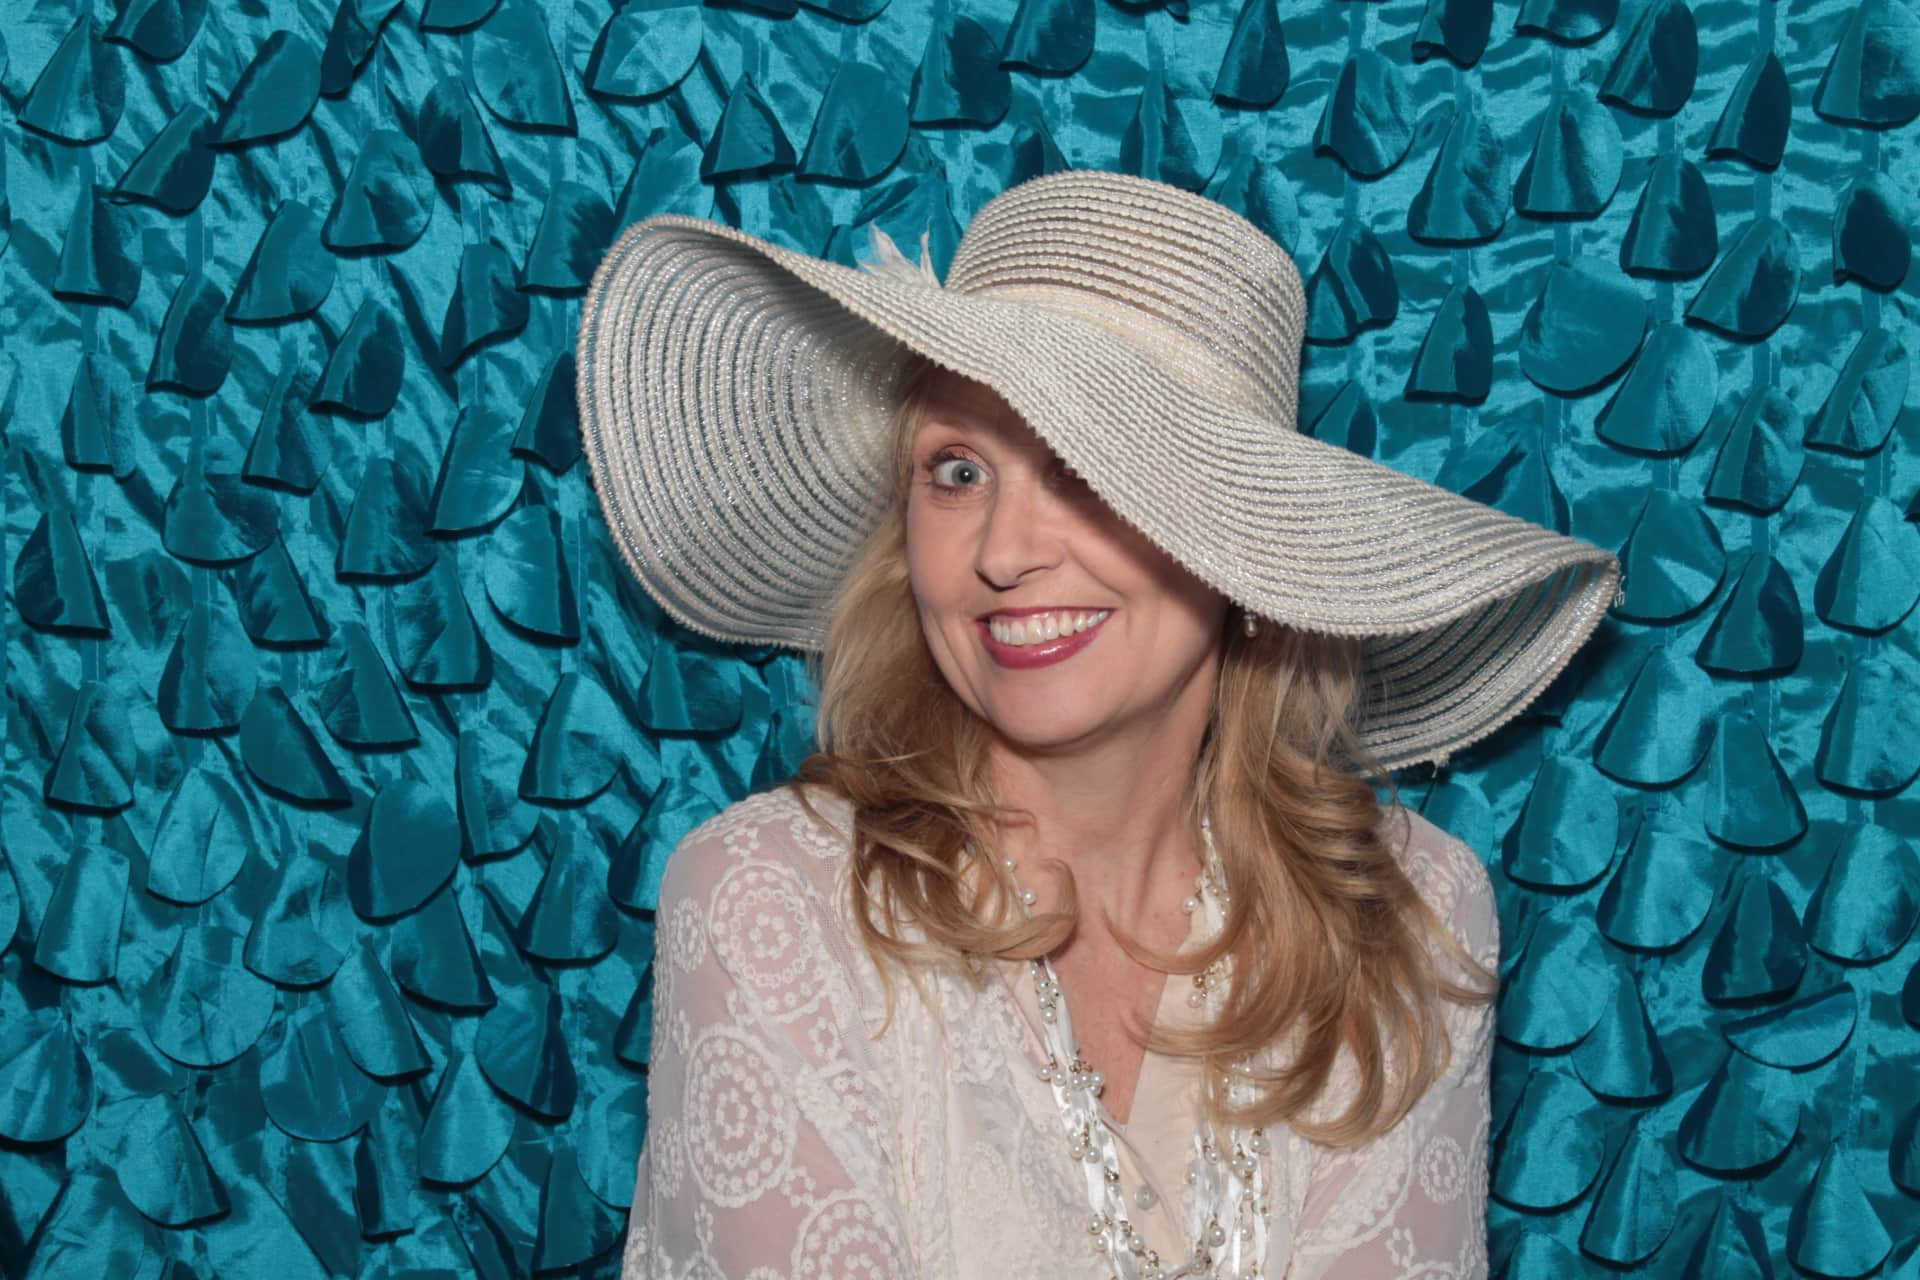 Central Texas Photo Booth rental, Photo-Booth-Rental-Austin-Exhibitions-Corporate-No.1-Props-LGBT-Fun-Memories-Best